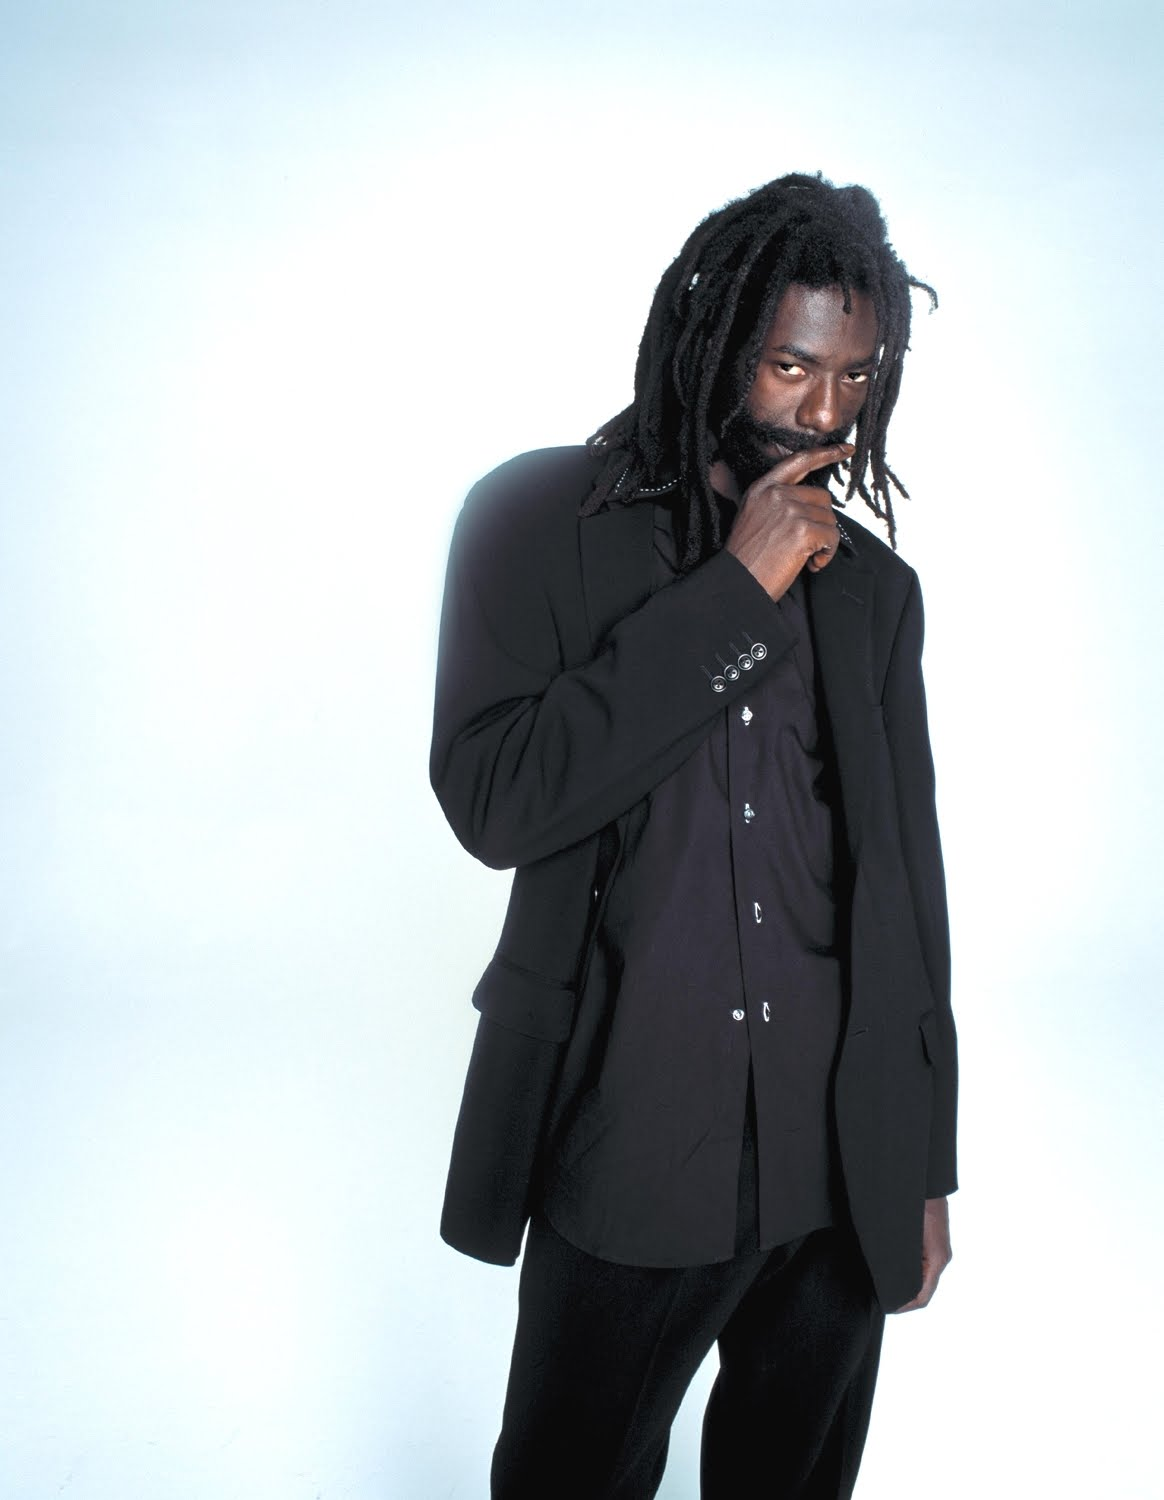 buju banton An unreliable entertainment site published a story claiming that reggae musician buju banton had killed himself in prison.